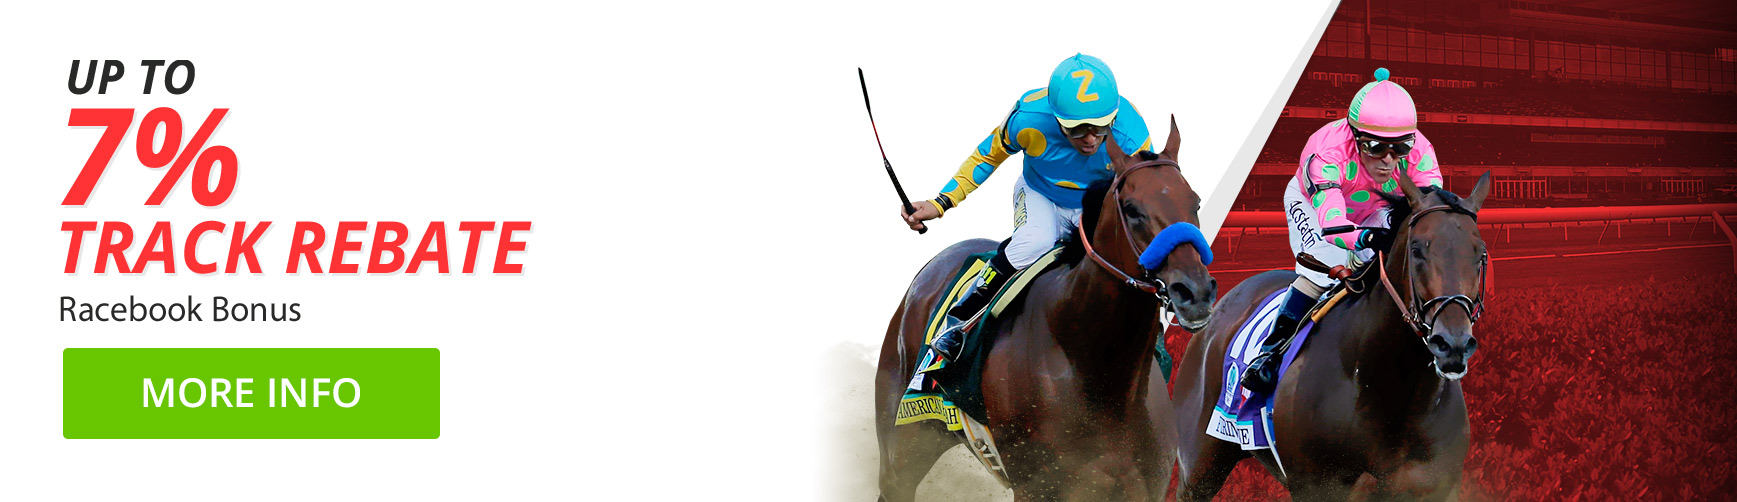 Top online horse betting sites how to bet on blackjack